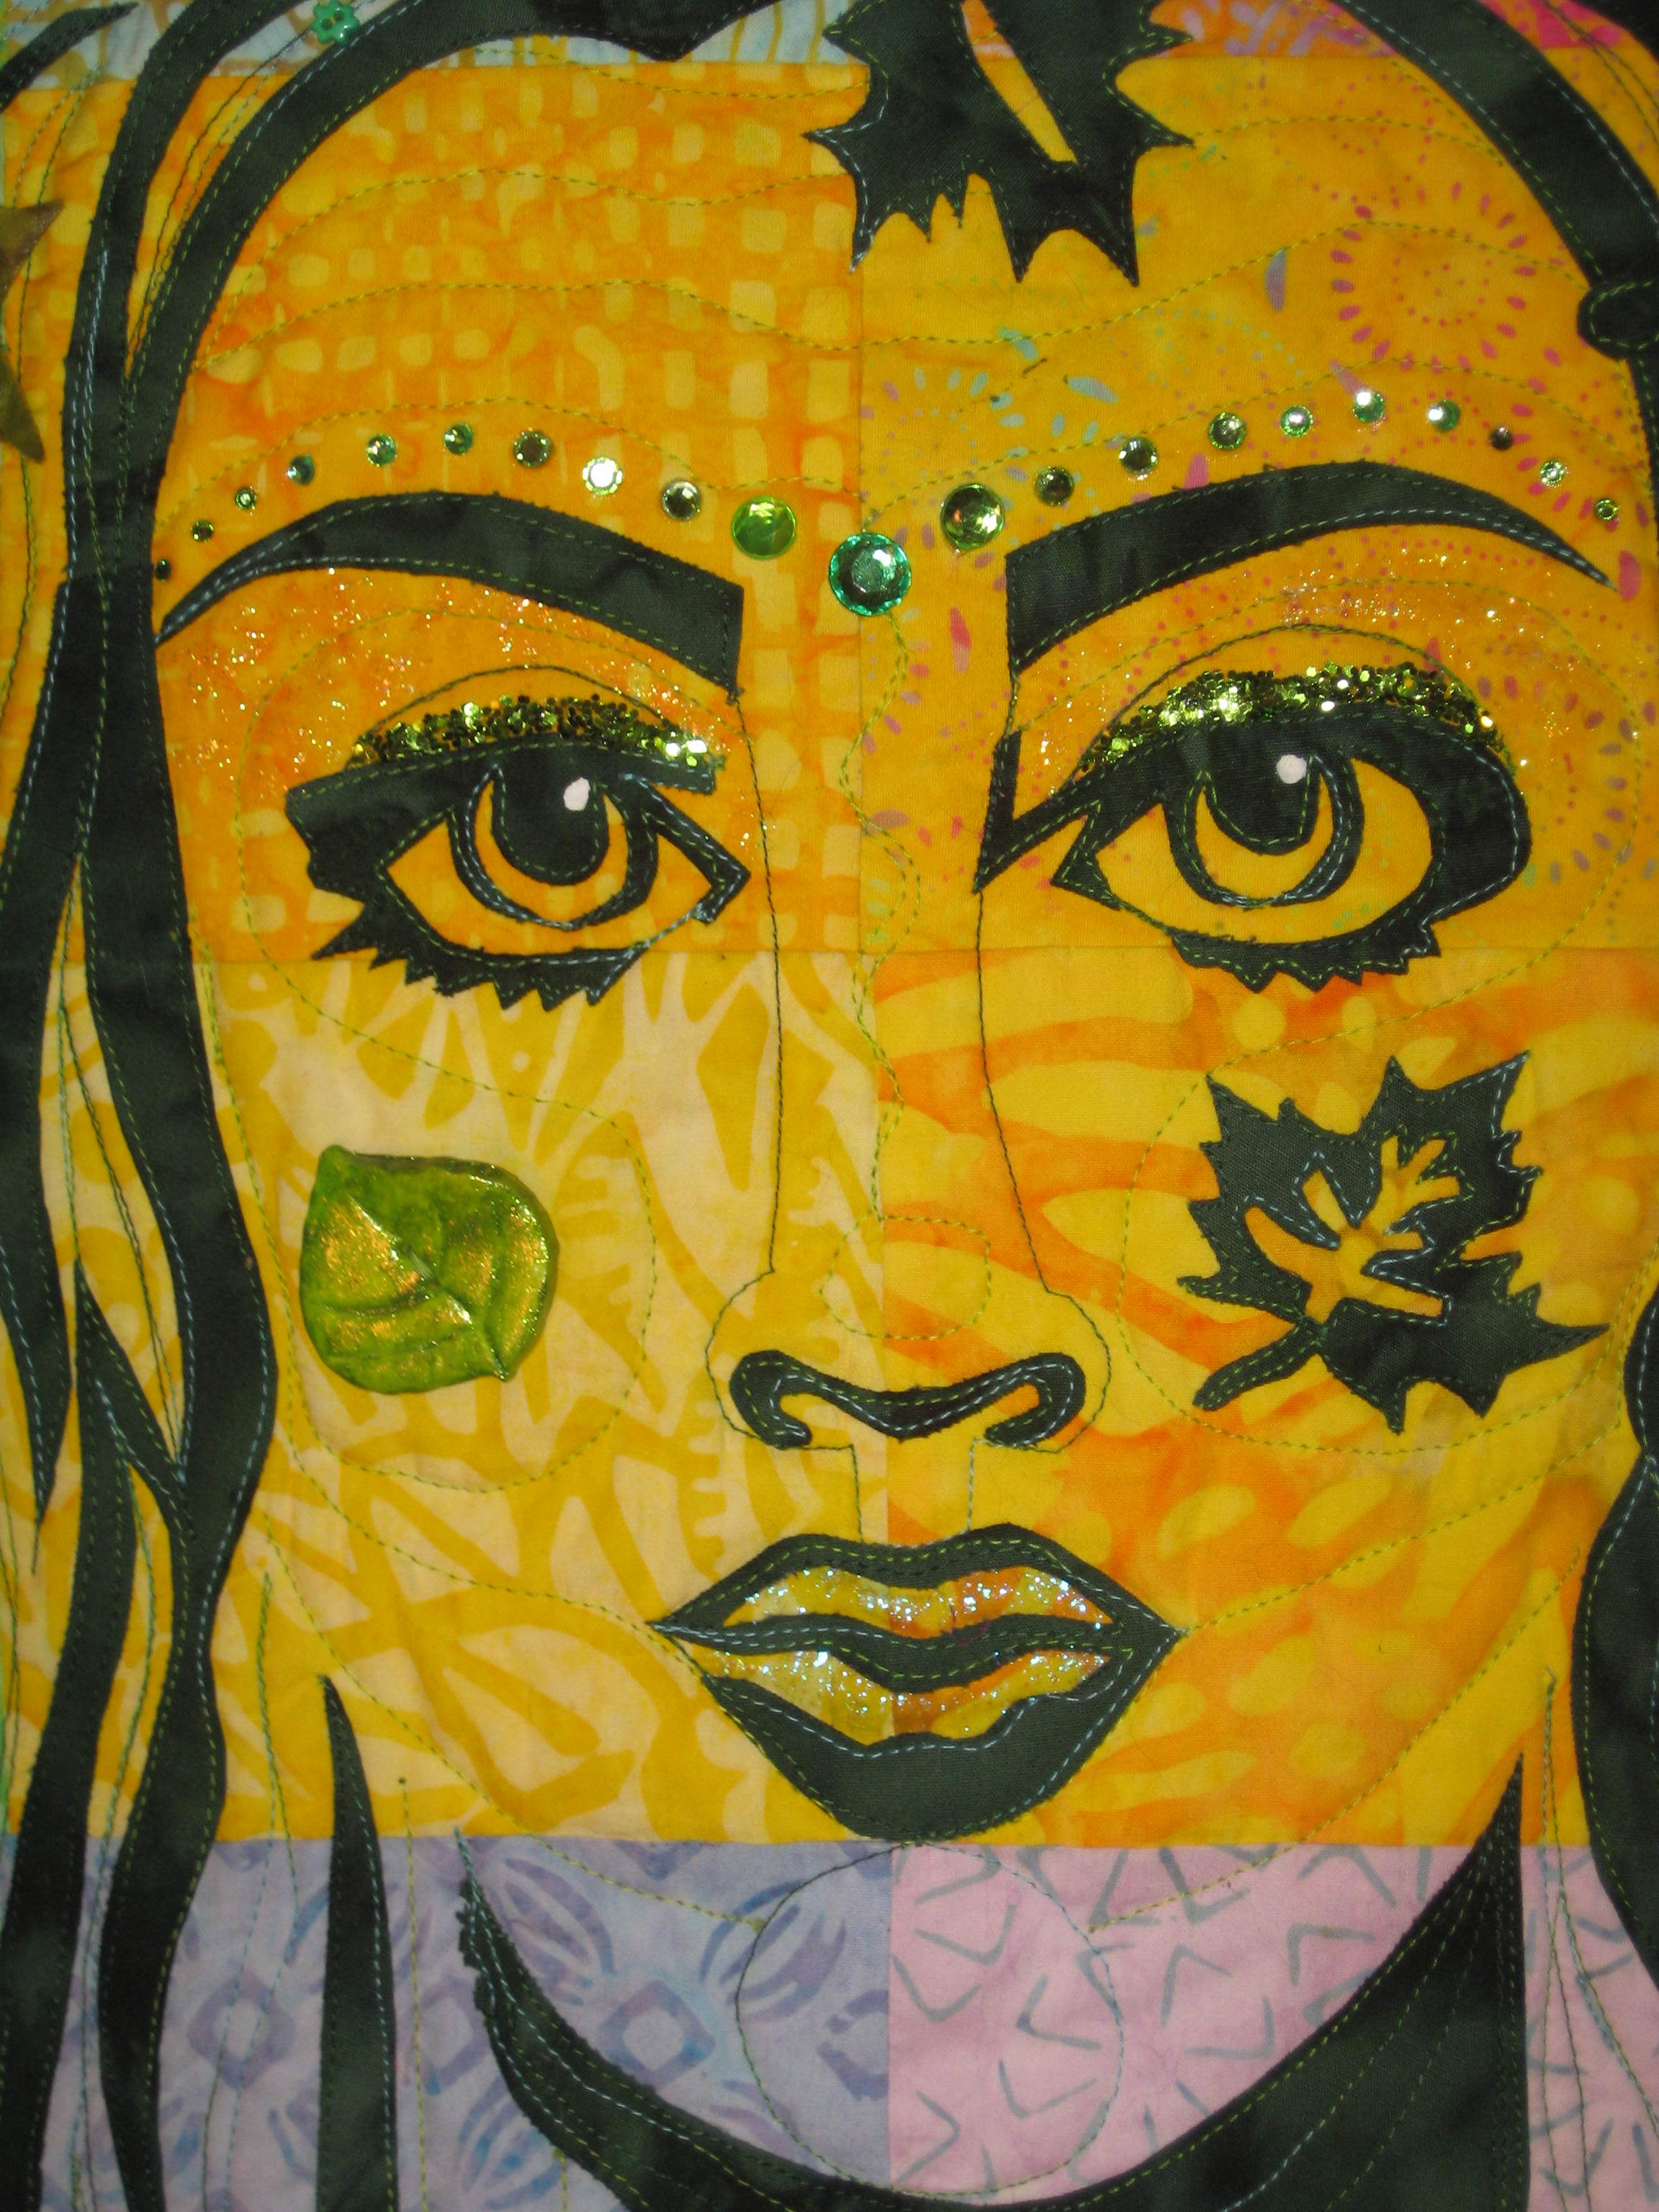 This is the close-up photo of the face with the quilting and the embellishing complete. I pulled from my embellishment stash any leaf or flower, large or small, in a variety of green colors. I added green rhinestones and loose glitter, glitter nail polish and a large glittery bead for the center of the necklace. Lots of sizes of green rhinestones above the eyebrows. The polymer button on the left cheek is painted with green nail polish to shine it up some! I took apart bracelets to use the green beads in this project-anything to have lots of green embellishments!Also silk flower scatter from The Dollar Tree stitched to the quilt in the crown area in between the applique leaves.